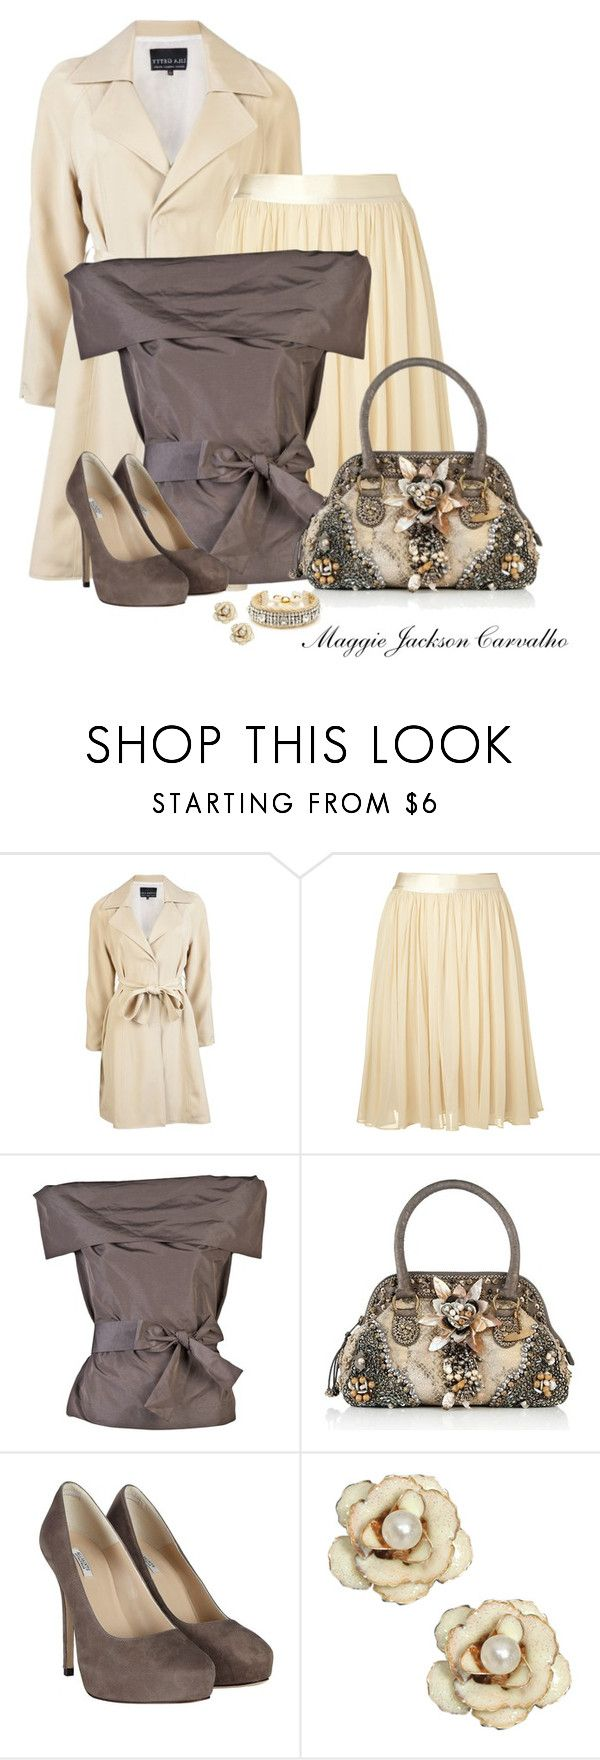 """Mary Frances Handbag"" by maggie-jackson-carvalho ❤ liked on Polyvore featuring Lila Getty, See by Chloé, Vivienne Westwood Anglomania, AllSaints, Wet Seal and Juicy Couture"